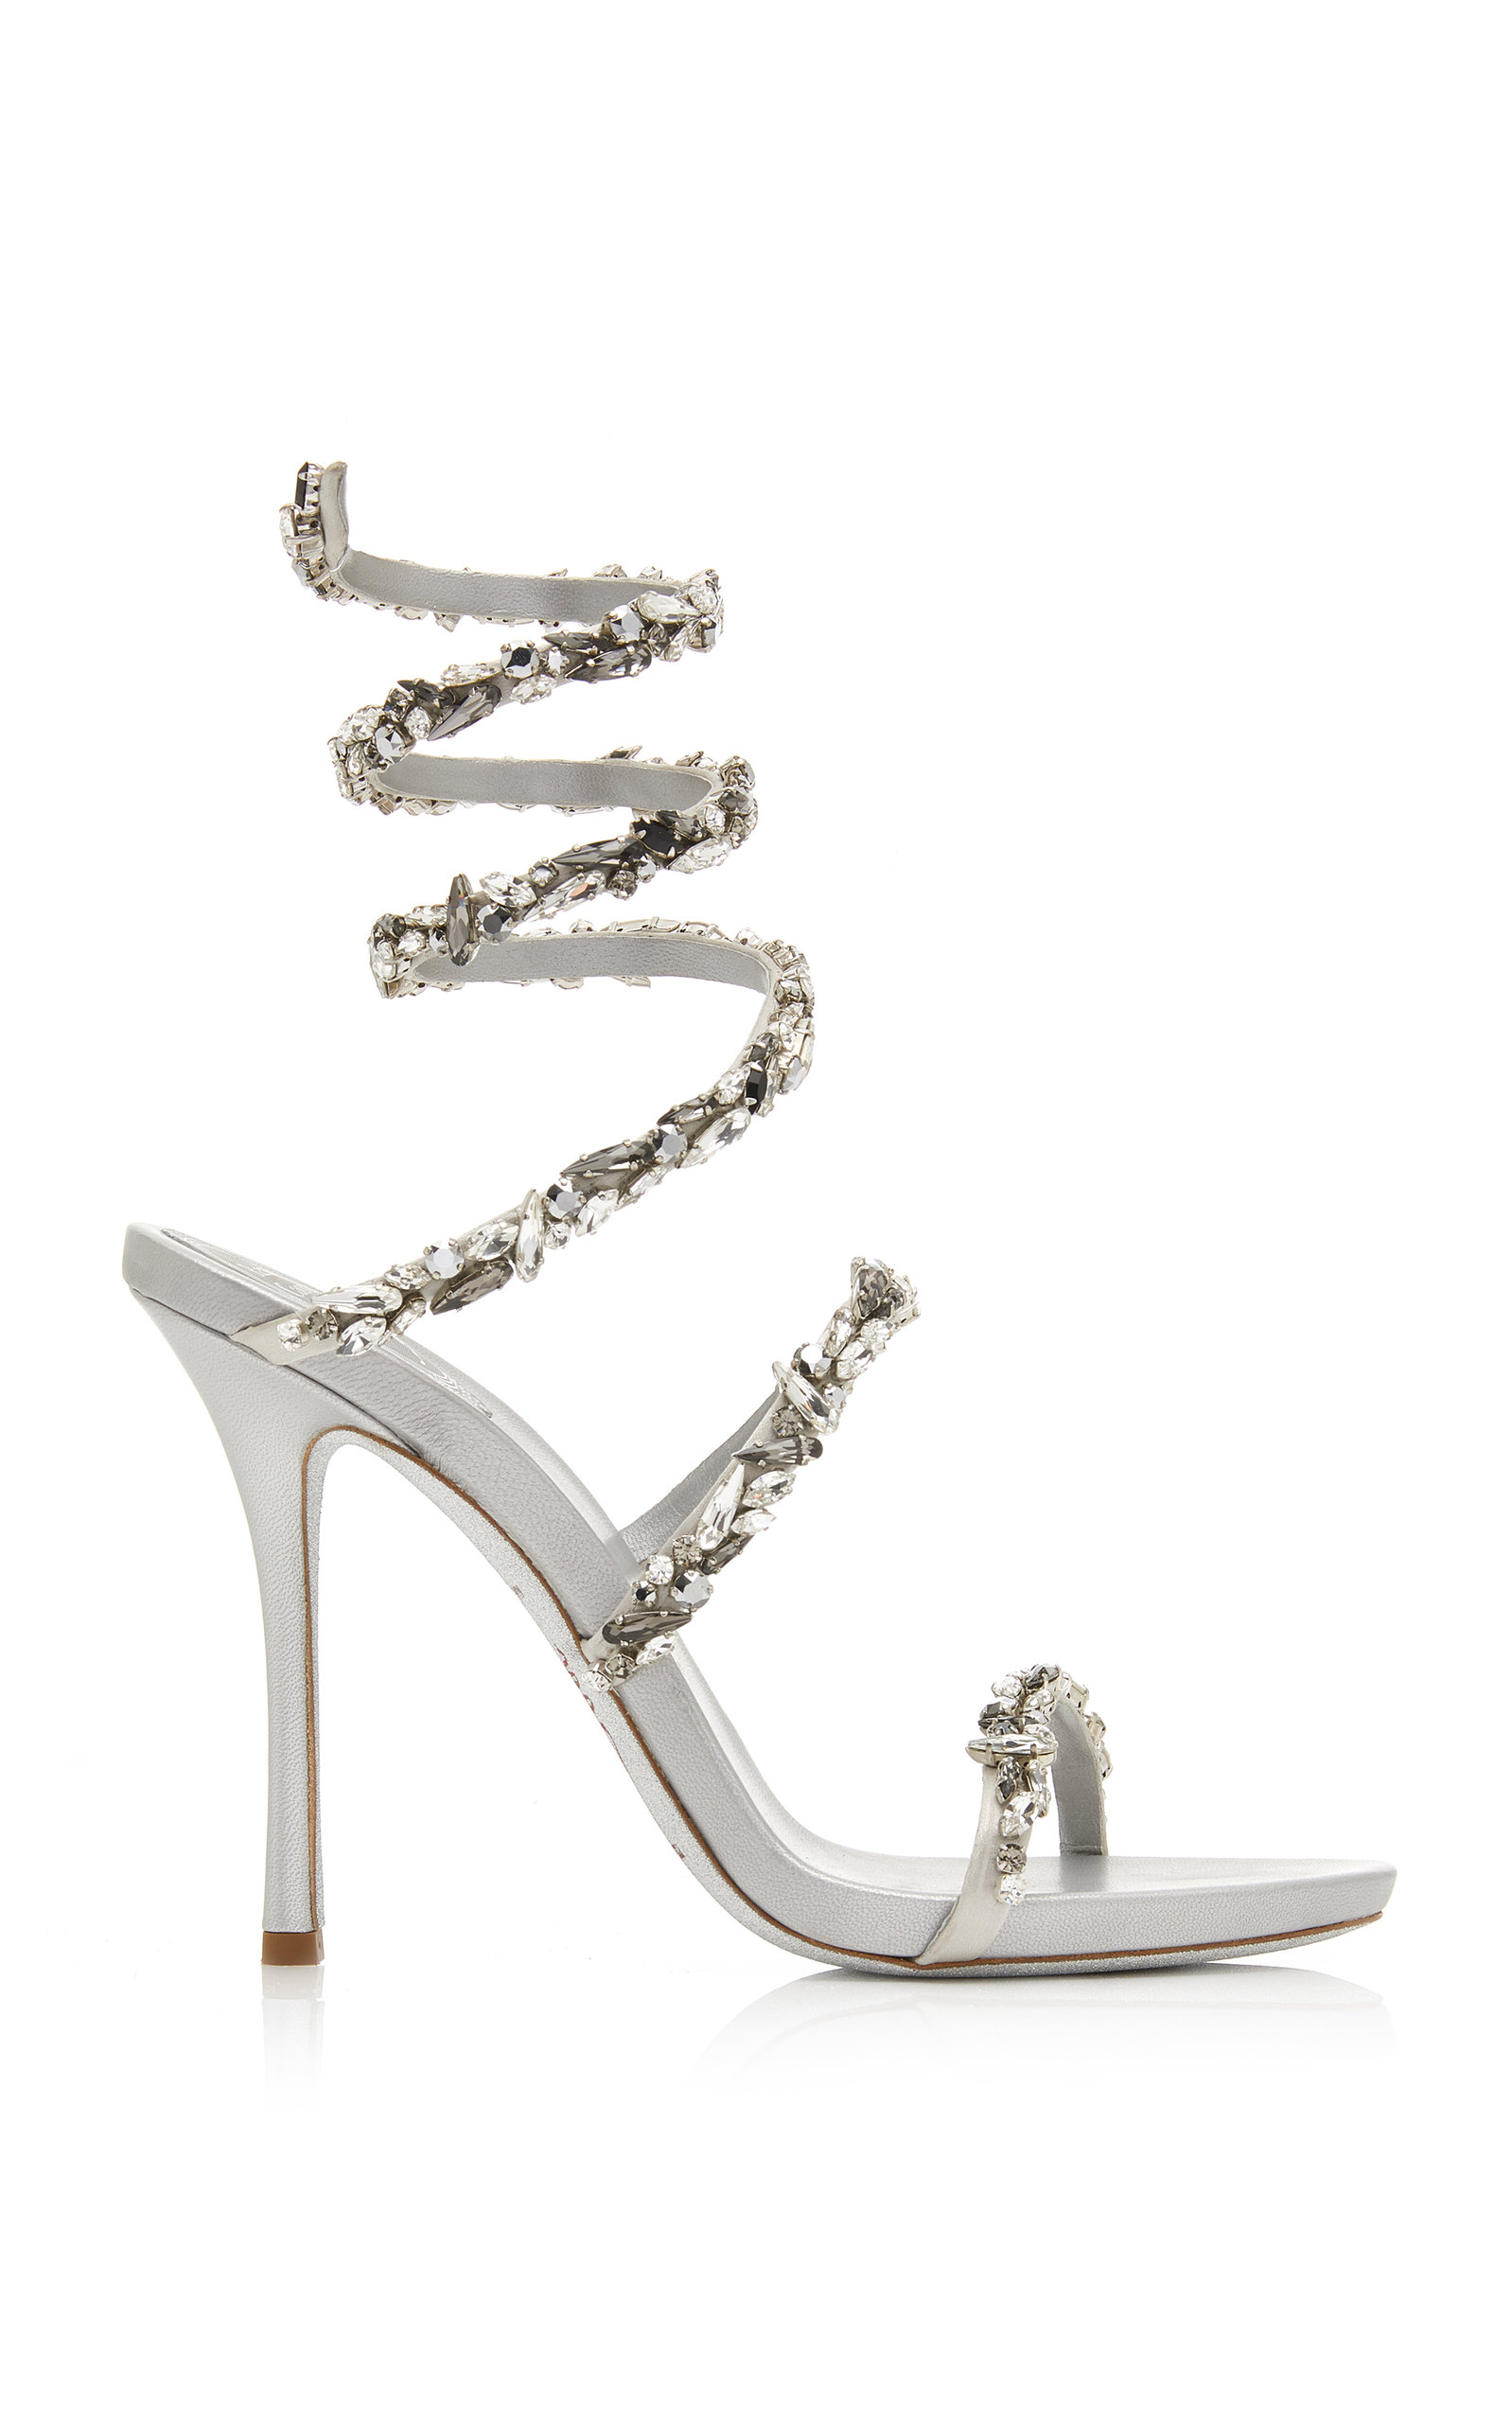 21032df1b85 Rene CaovillaCrystal-Embellished Satin Snake-Coil Sandals. CLOSE. Loading